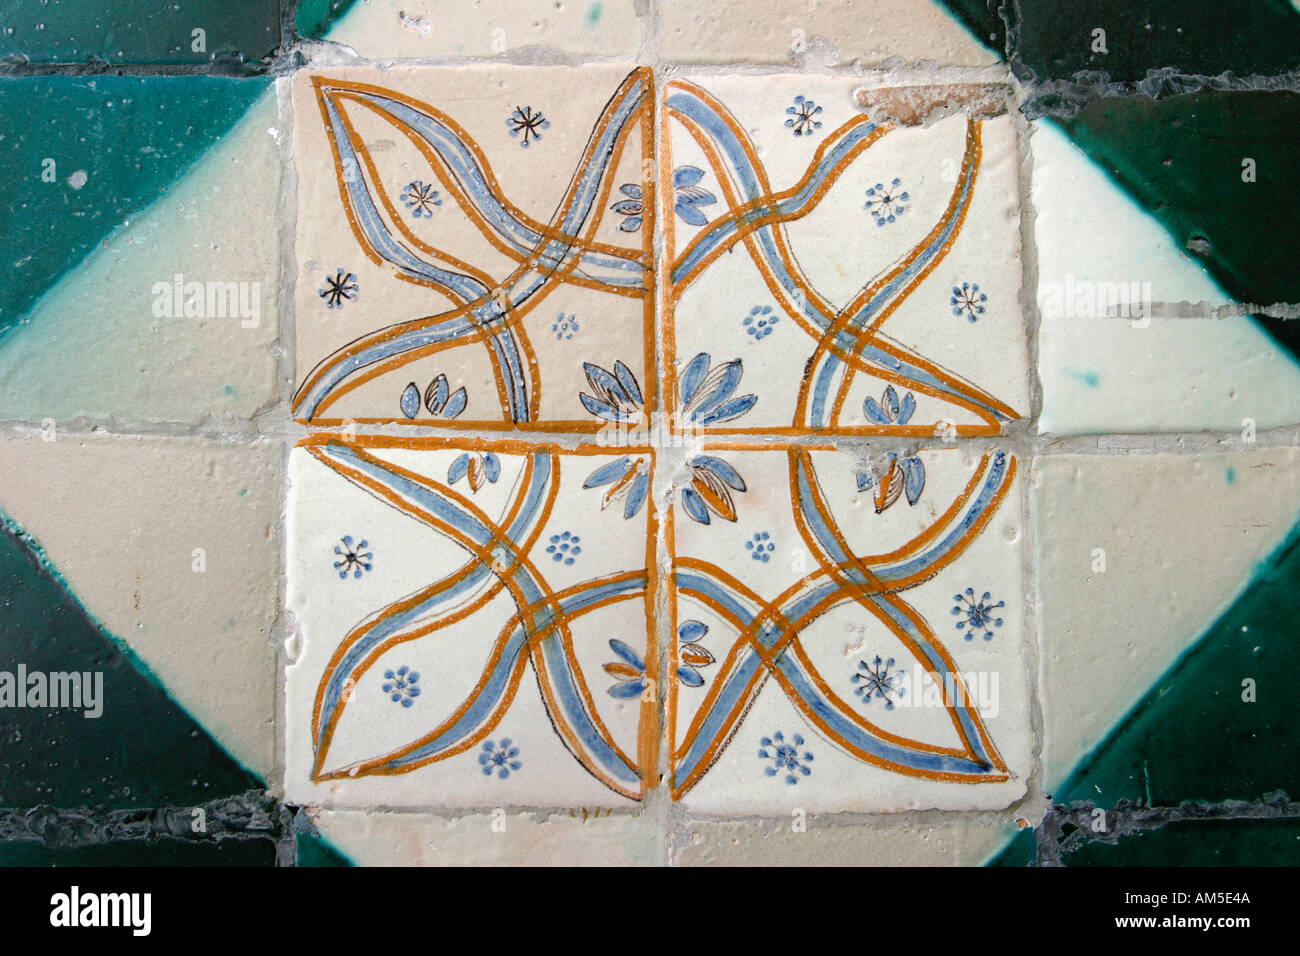 Ceramic tiles manufacturers in spain image collections tile spain ceramic tiles company choice image tile flooring design ideas early spanish ceramic tile in najera dailygadgetfo Images